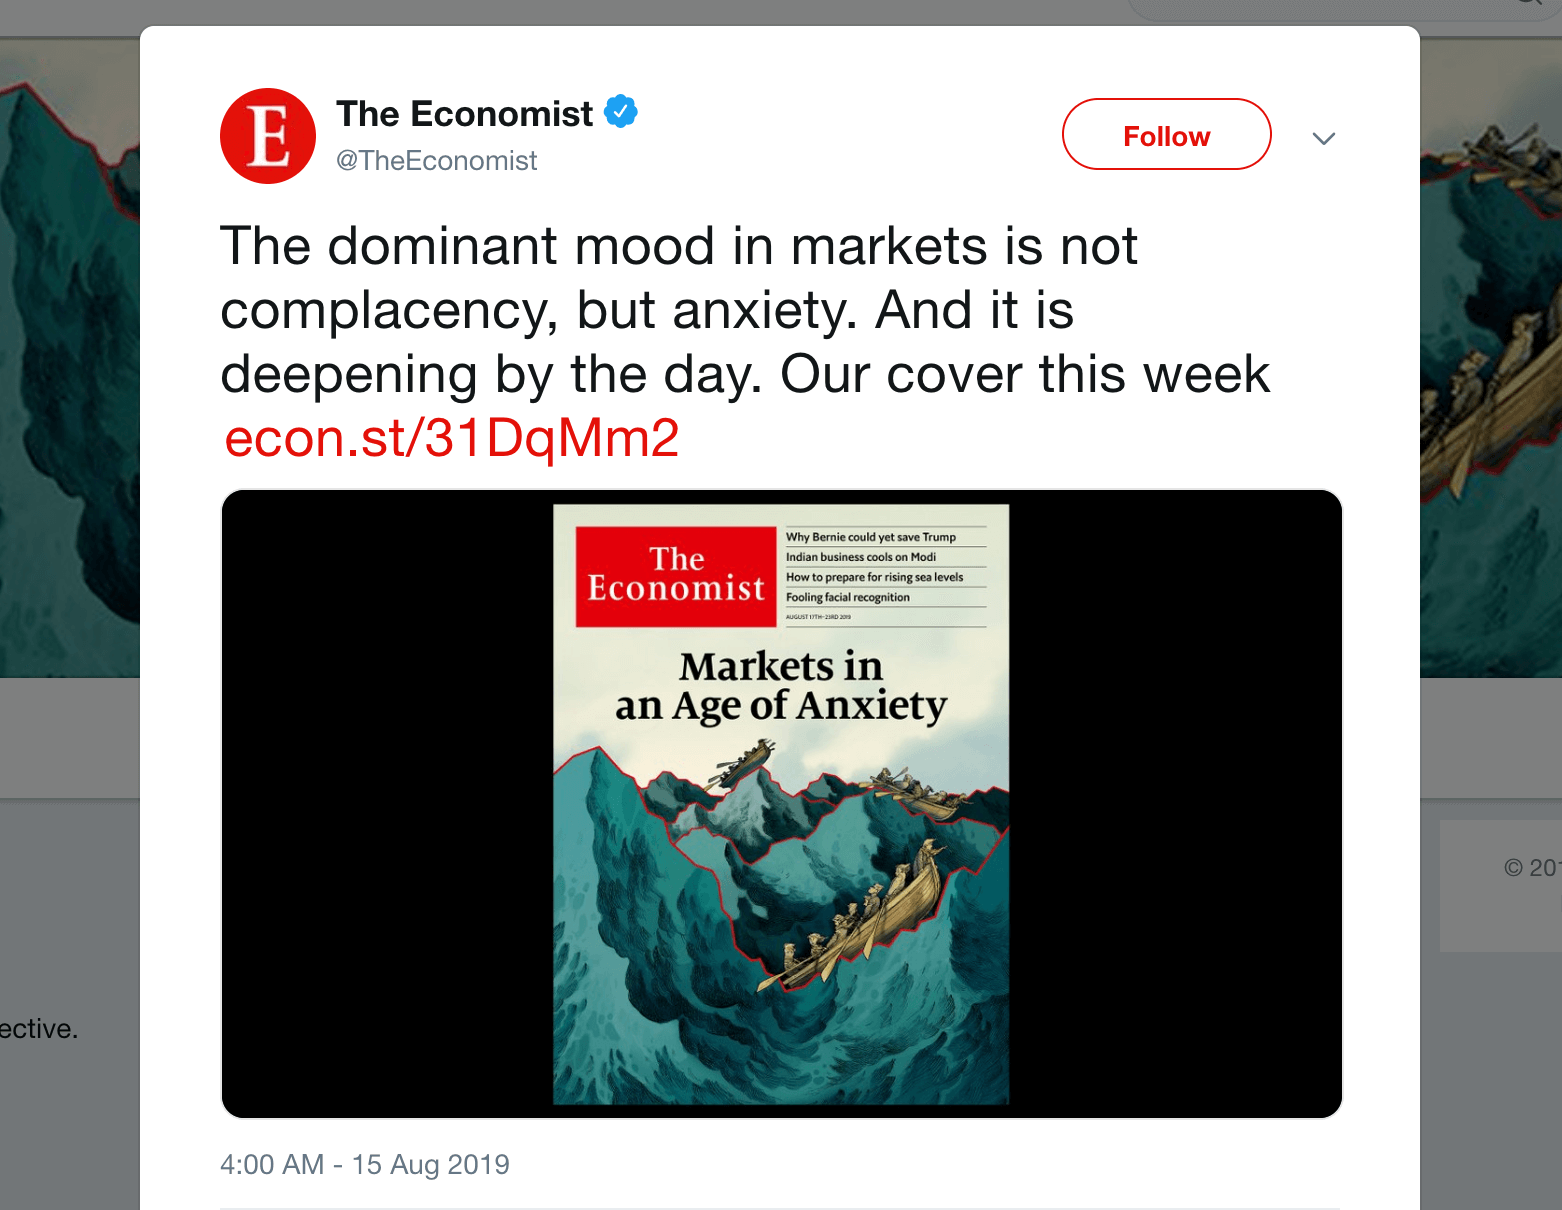 A short link in a Tweet from the Economist.